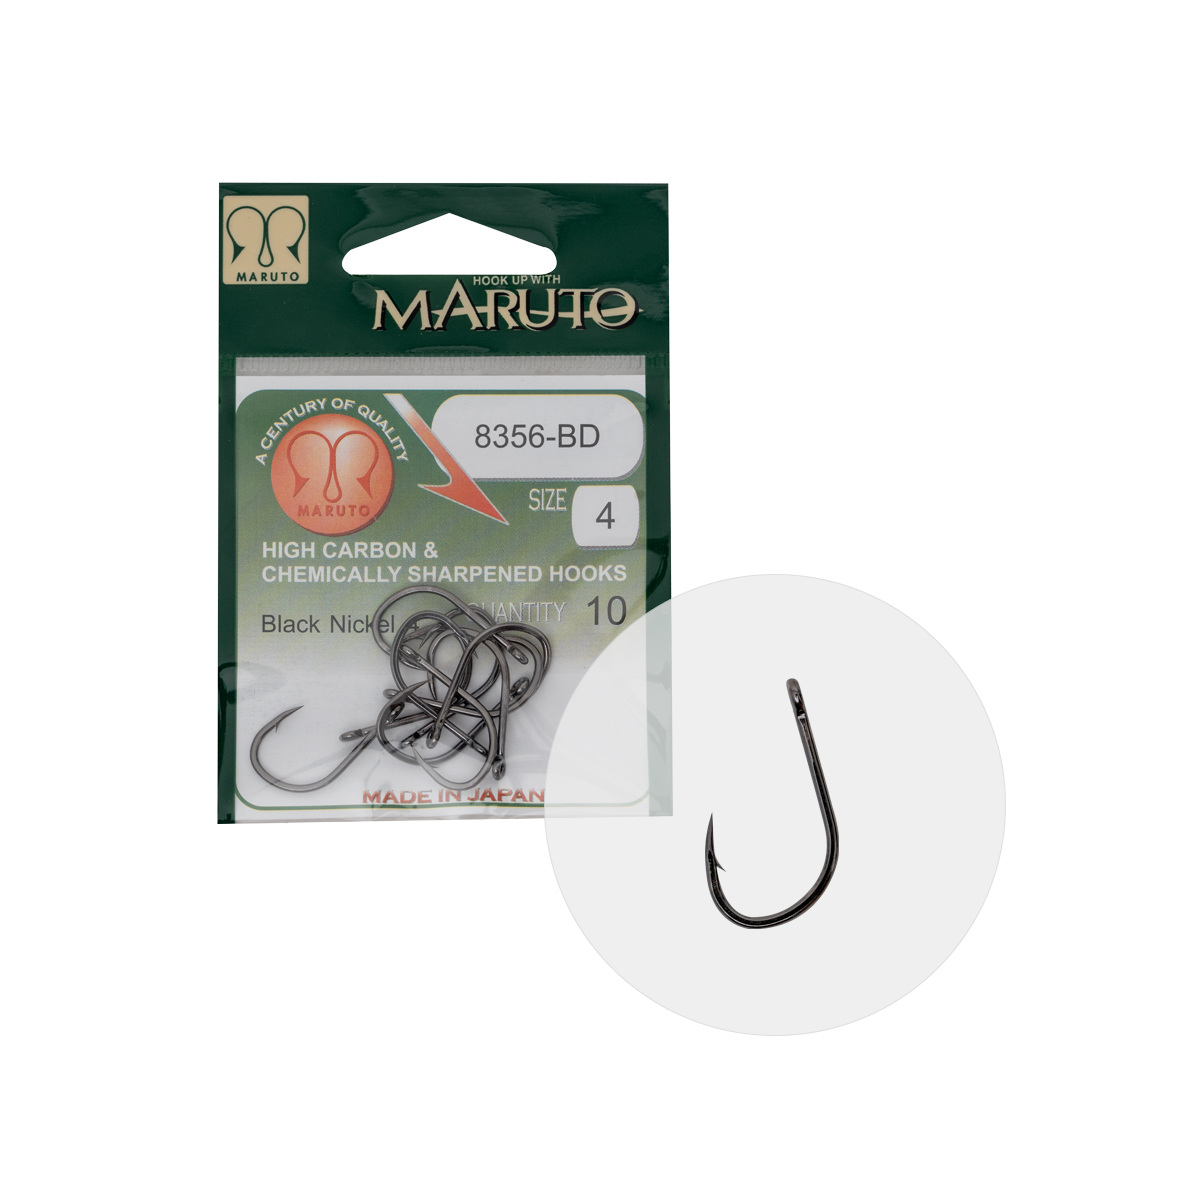 MARUTO HOROG 8356-BD CARP HOOKS BARBED FORGED STRAIGHT EYE HC  BLACK NICKEL 4